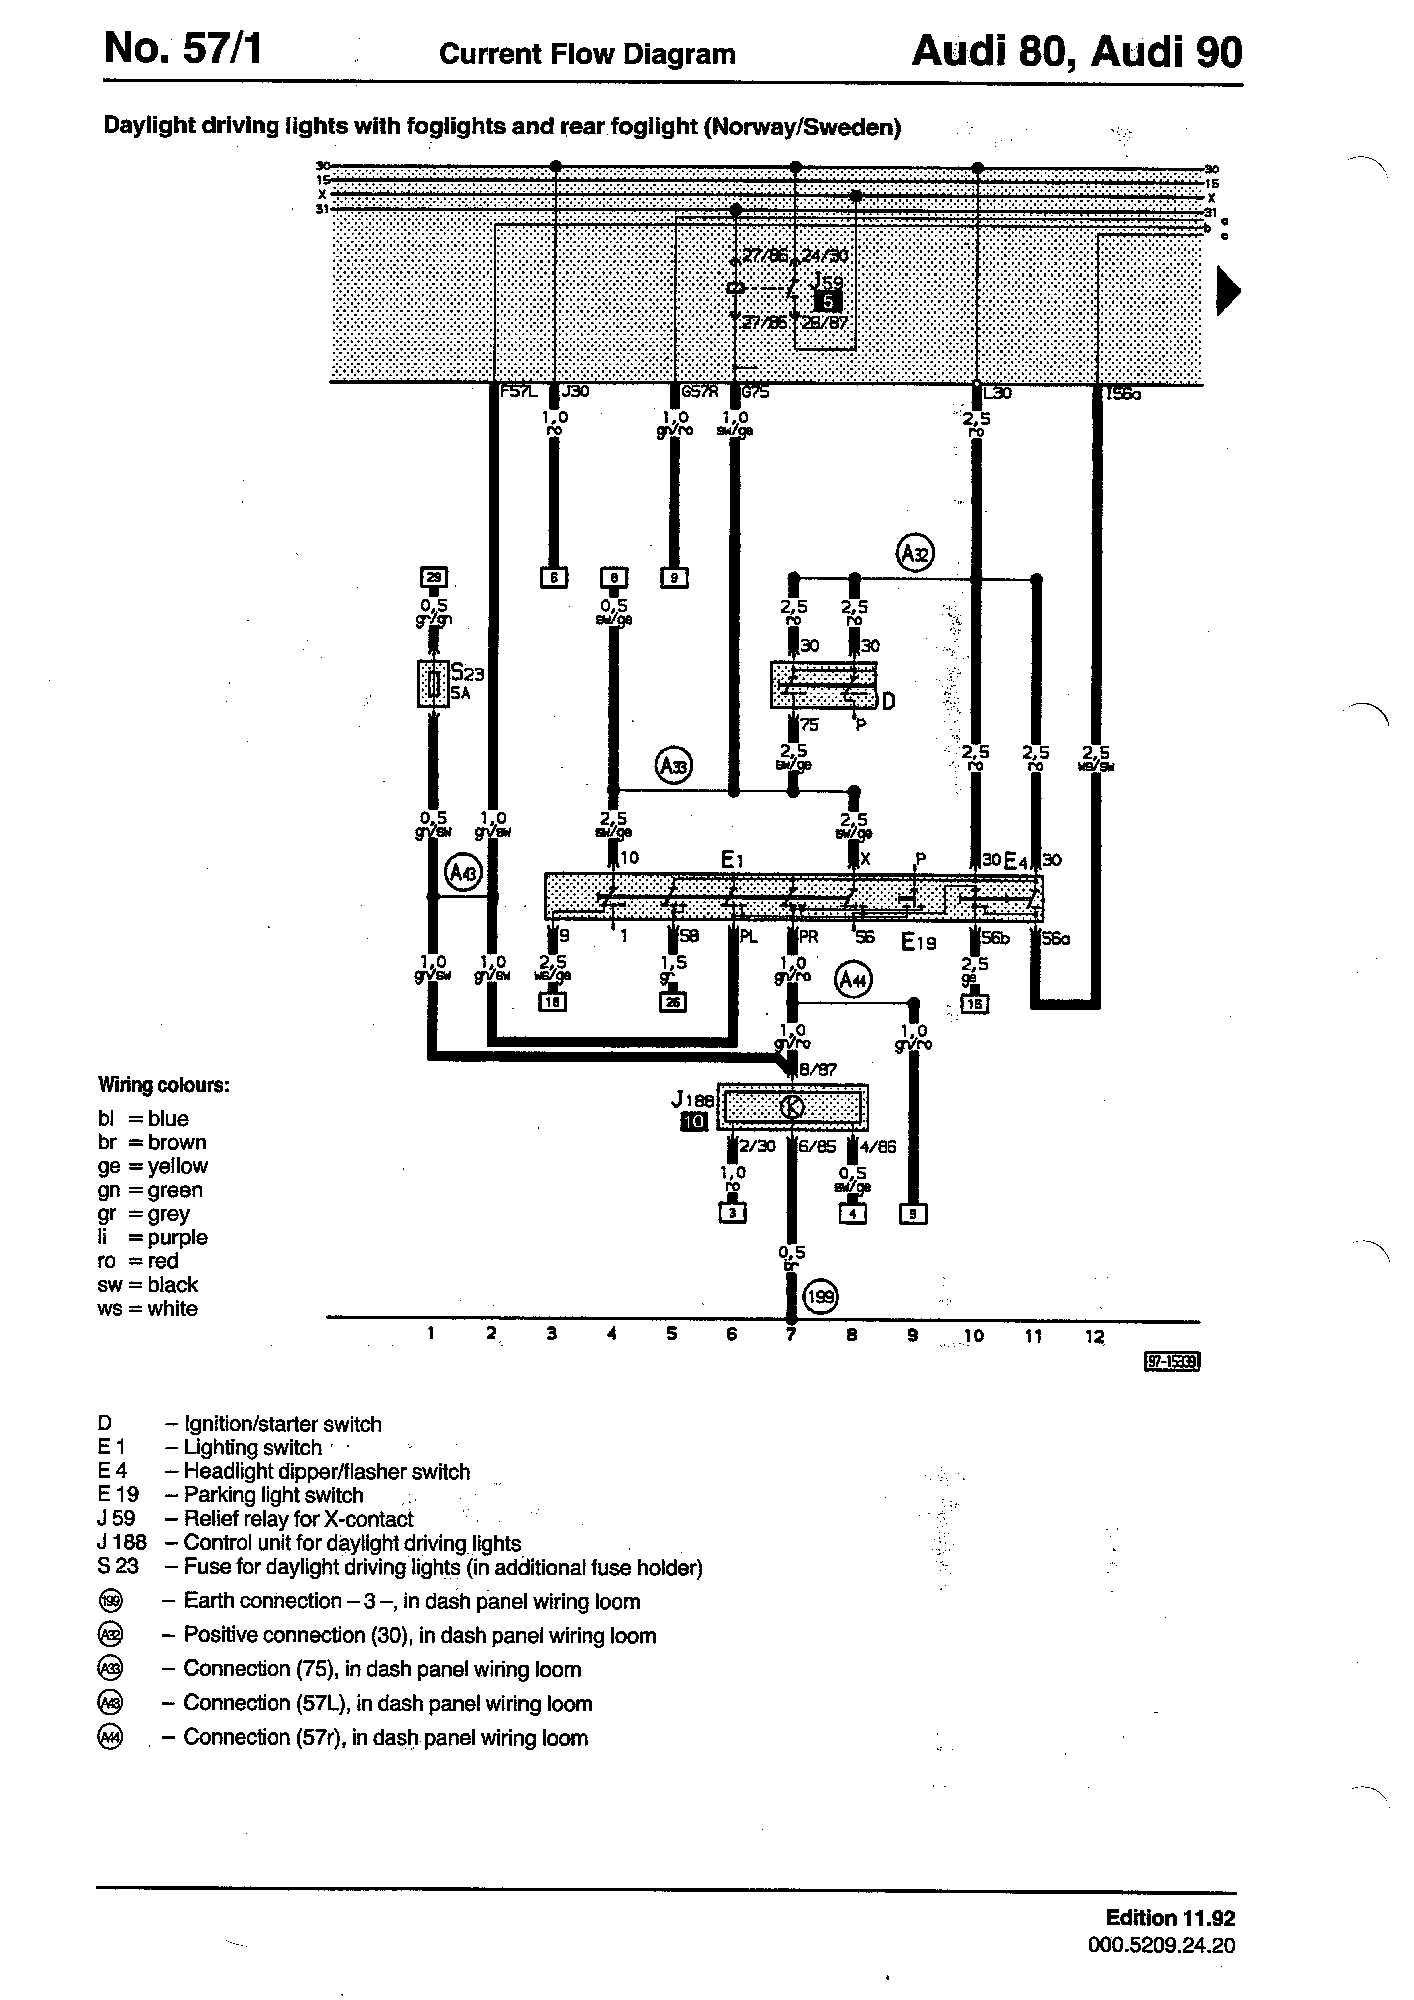 Wiring Diagrams Component Lookup Diagram 2 Switches Harness Parking Light Switch E19